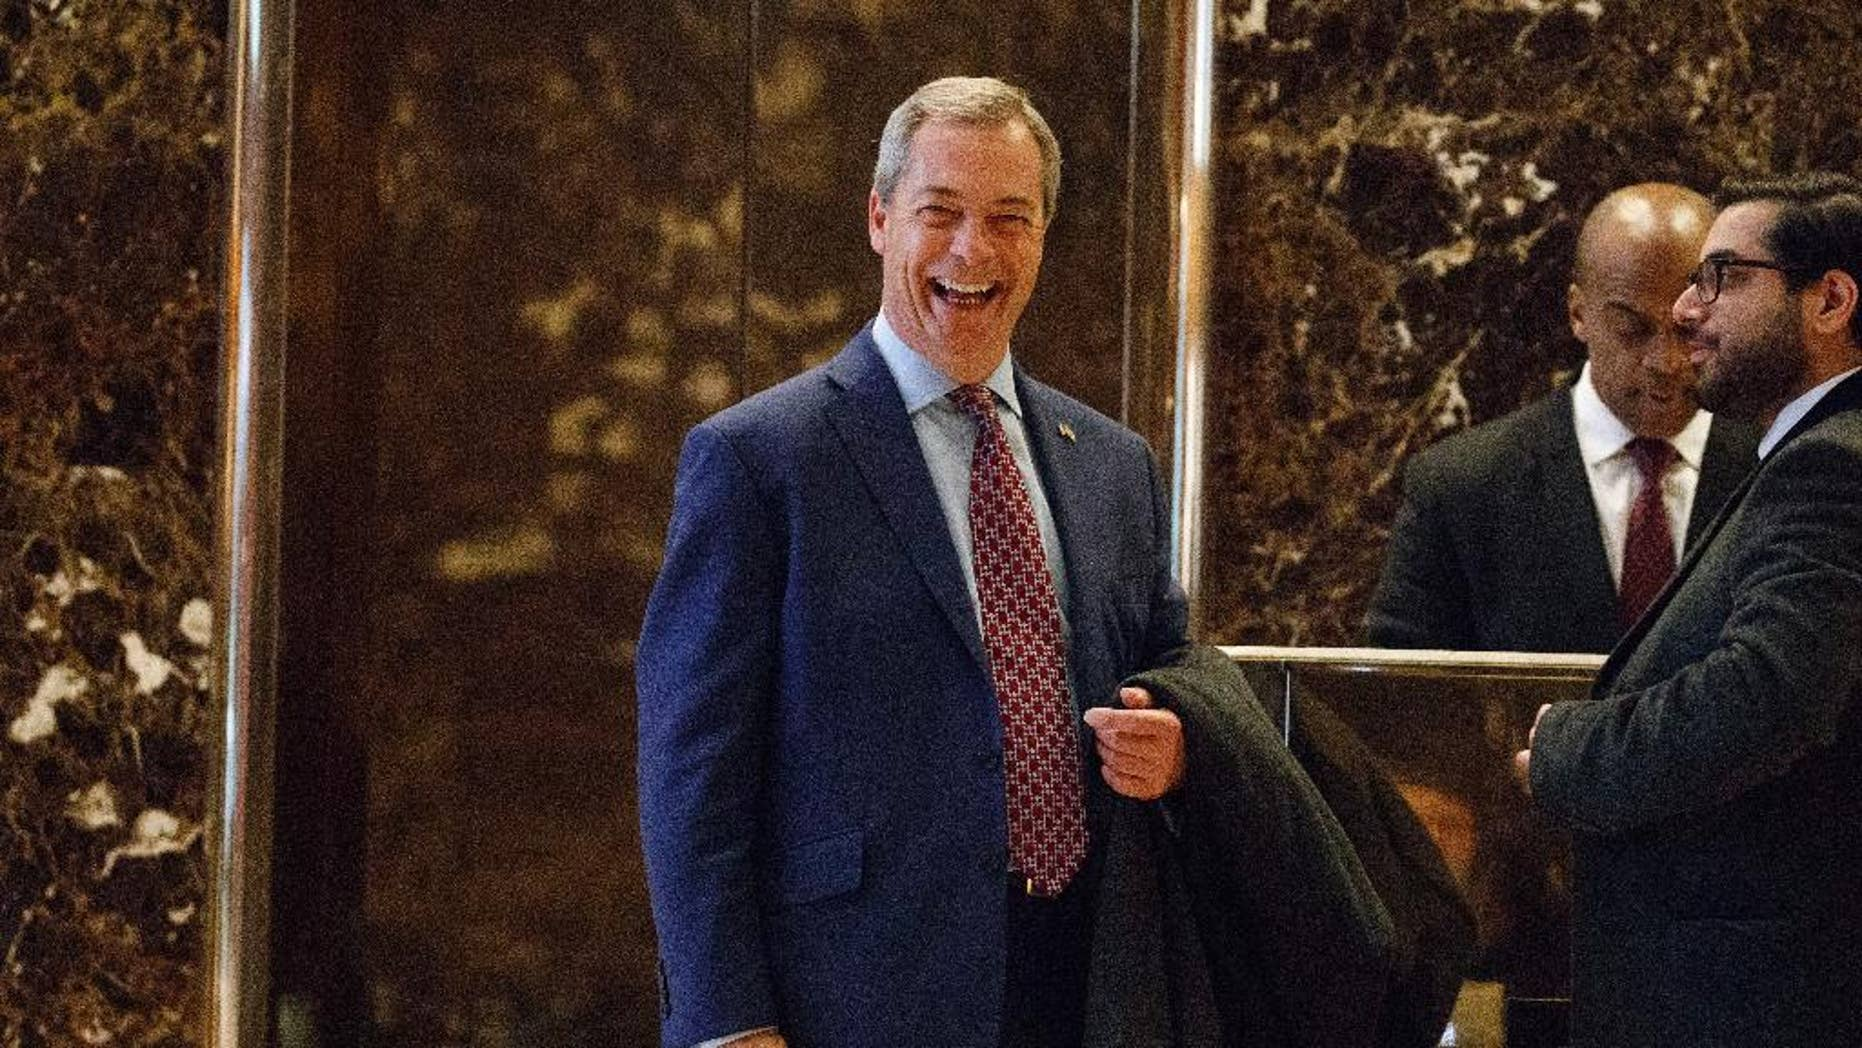 FILE - In this Saturday, Nov. 12, 2016 file photo, U.K. Independence Party leader Nigel Farage smiles as he arrives at Trump Tower, in New York. Officials in Prime Minister Theresa May's government rejected the idea of Farage to be its go-between with the incoming Trump administration on Sunday Dec. 18, 2016, after Farage argued he would be ideal given his bond formed on the U.S. presidential campaign trail with Trump. (AP Photo/ Evan Vucci, File)